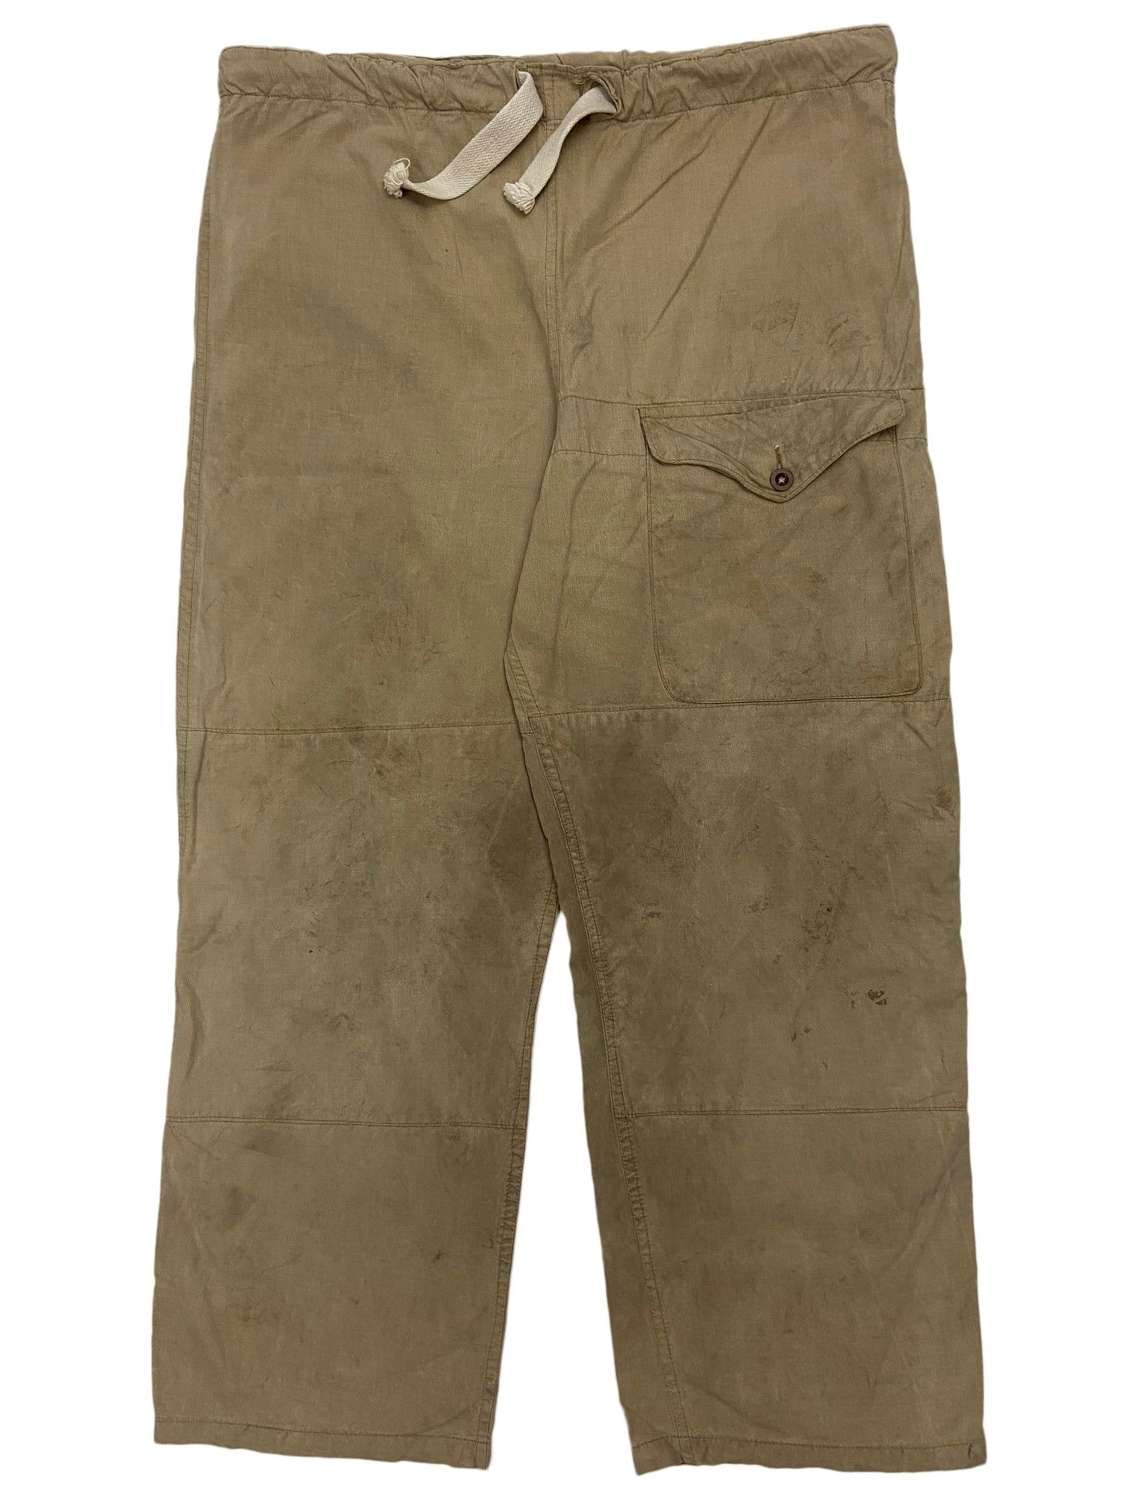 Original 1942 Dated Windproof 'Trousers Drab' - Size 2